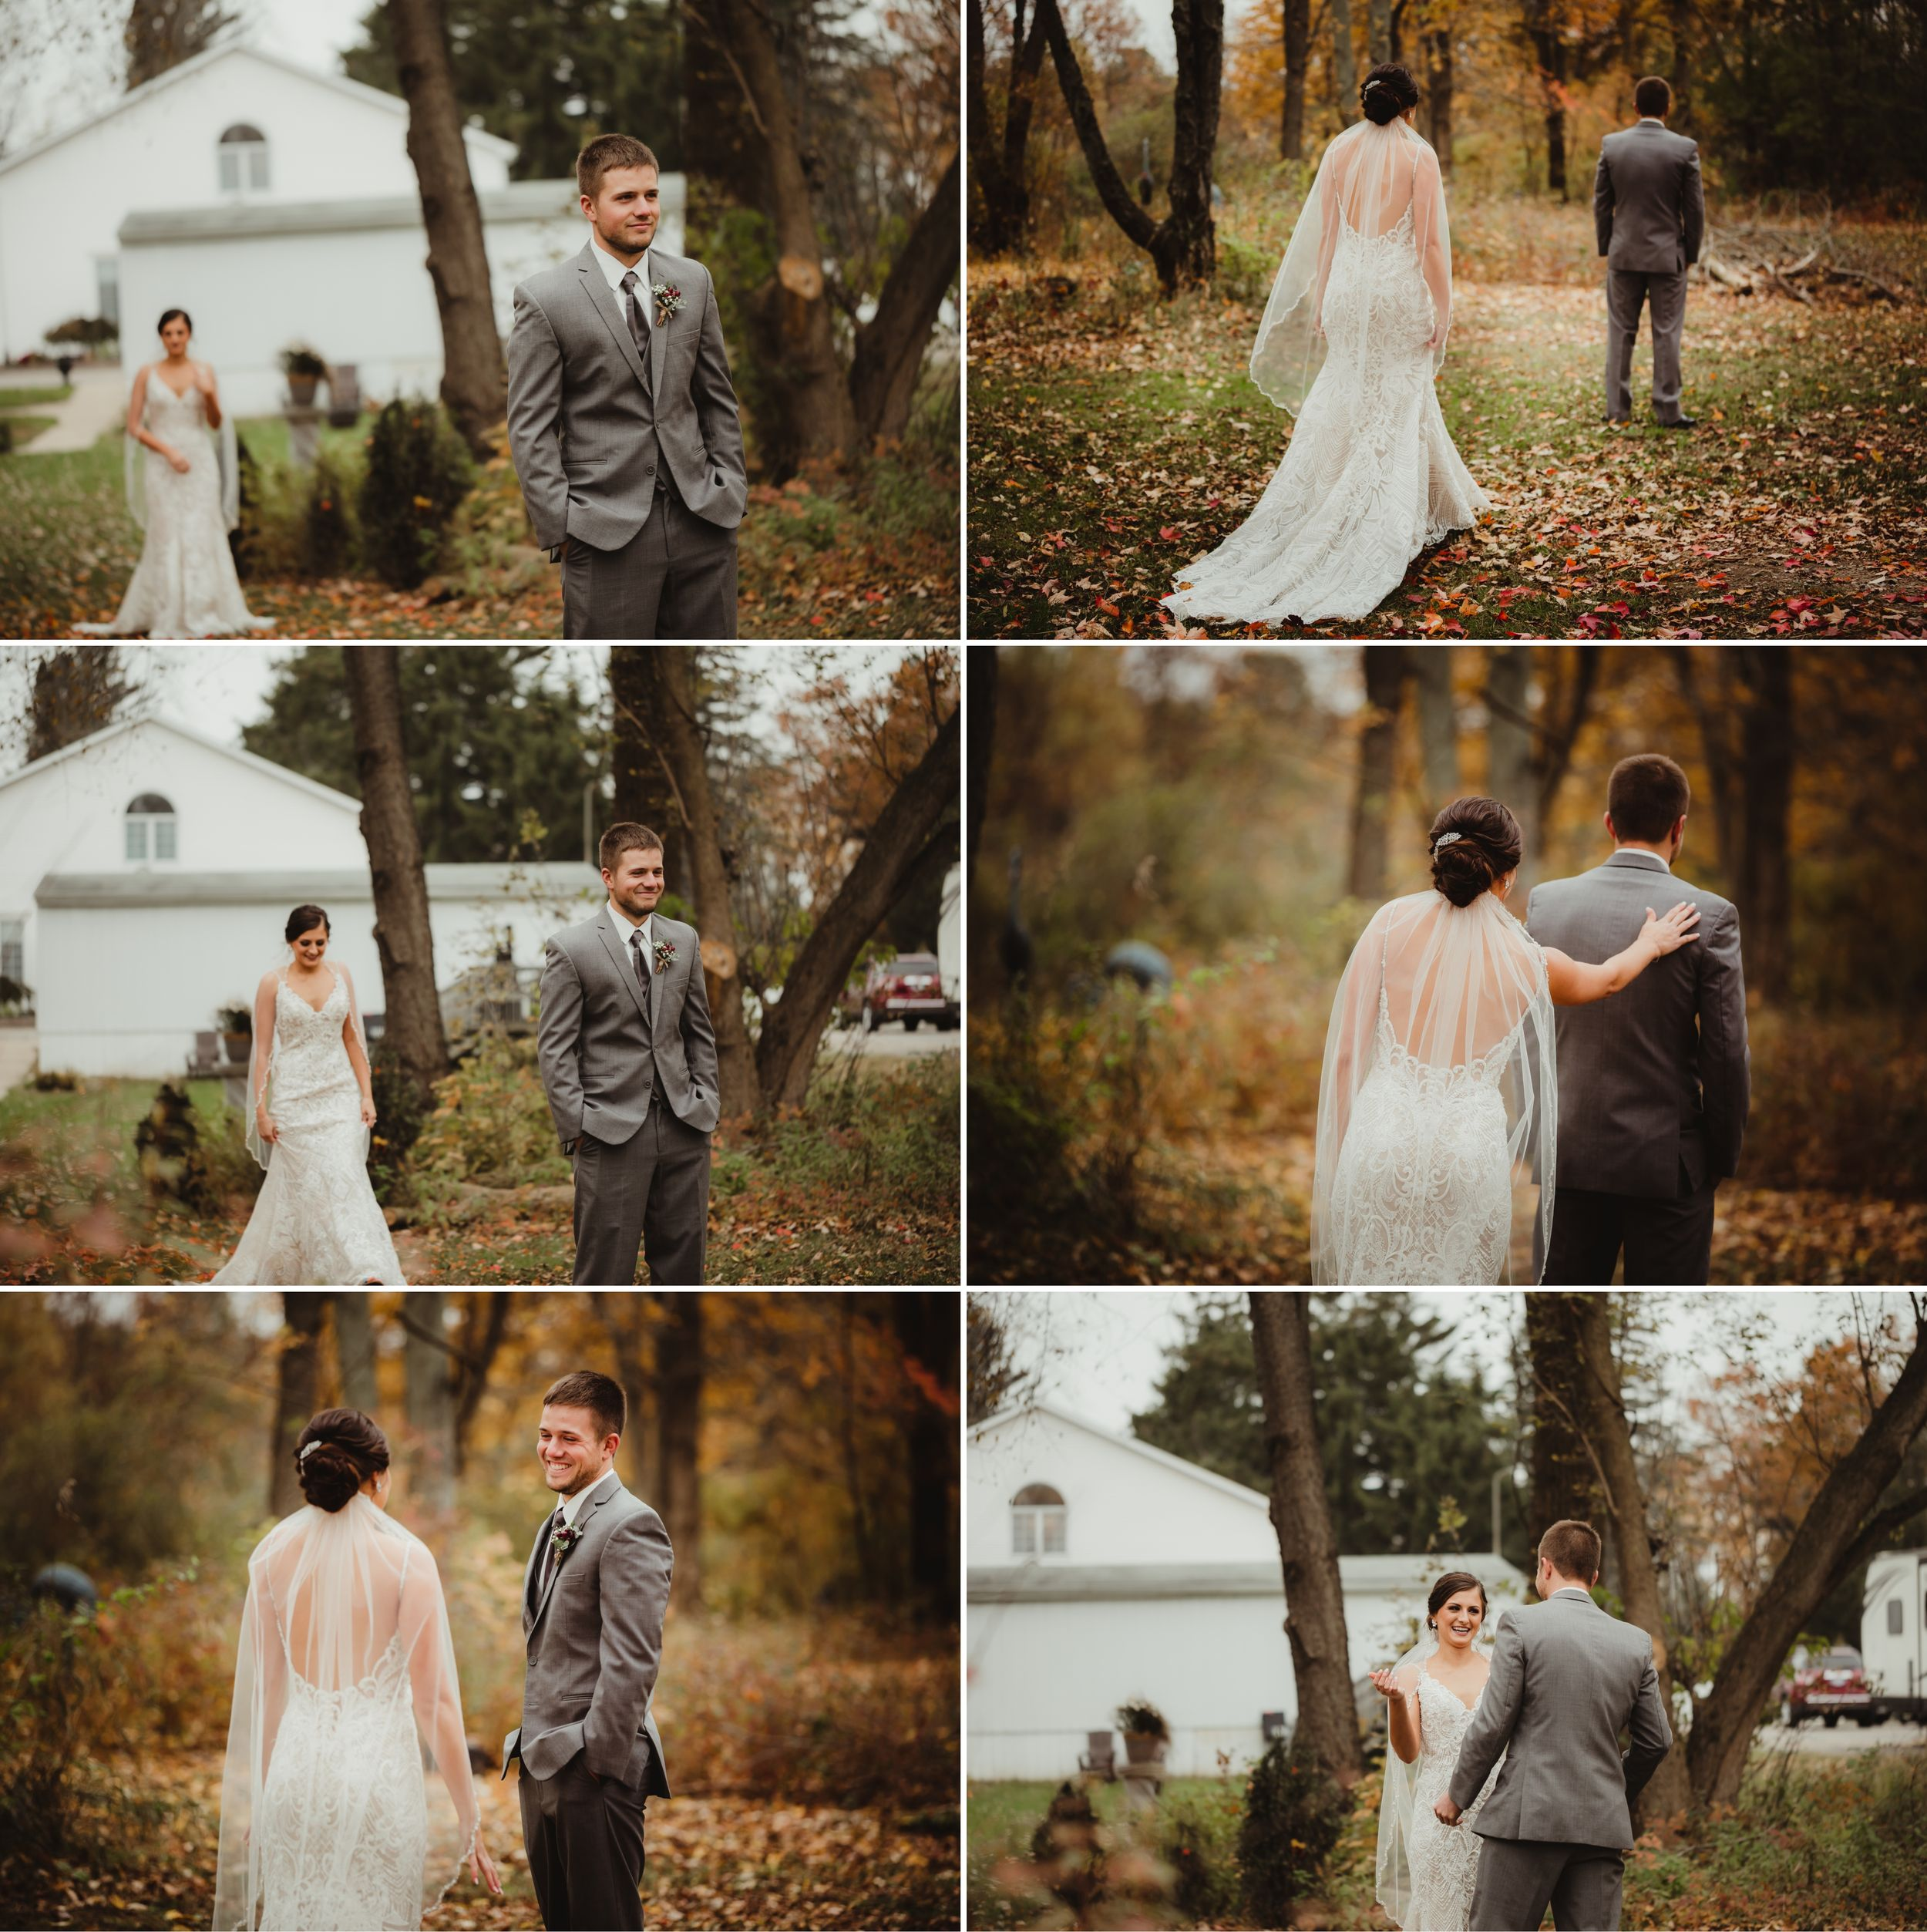 First look between the bride and groom. They are outside near trees with fall colored foliage on the ground.